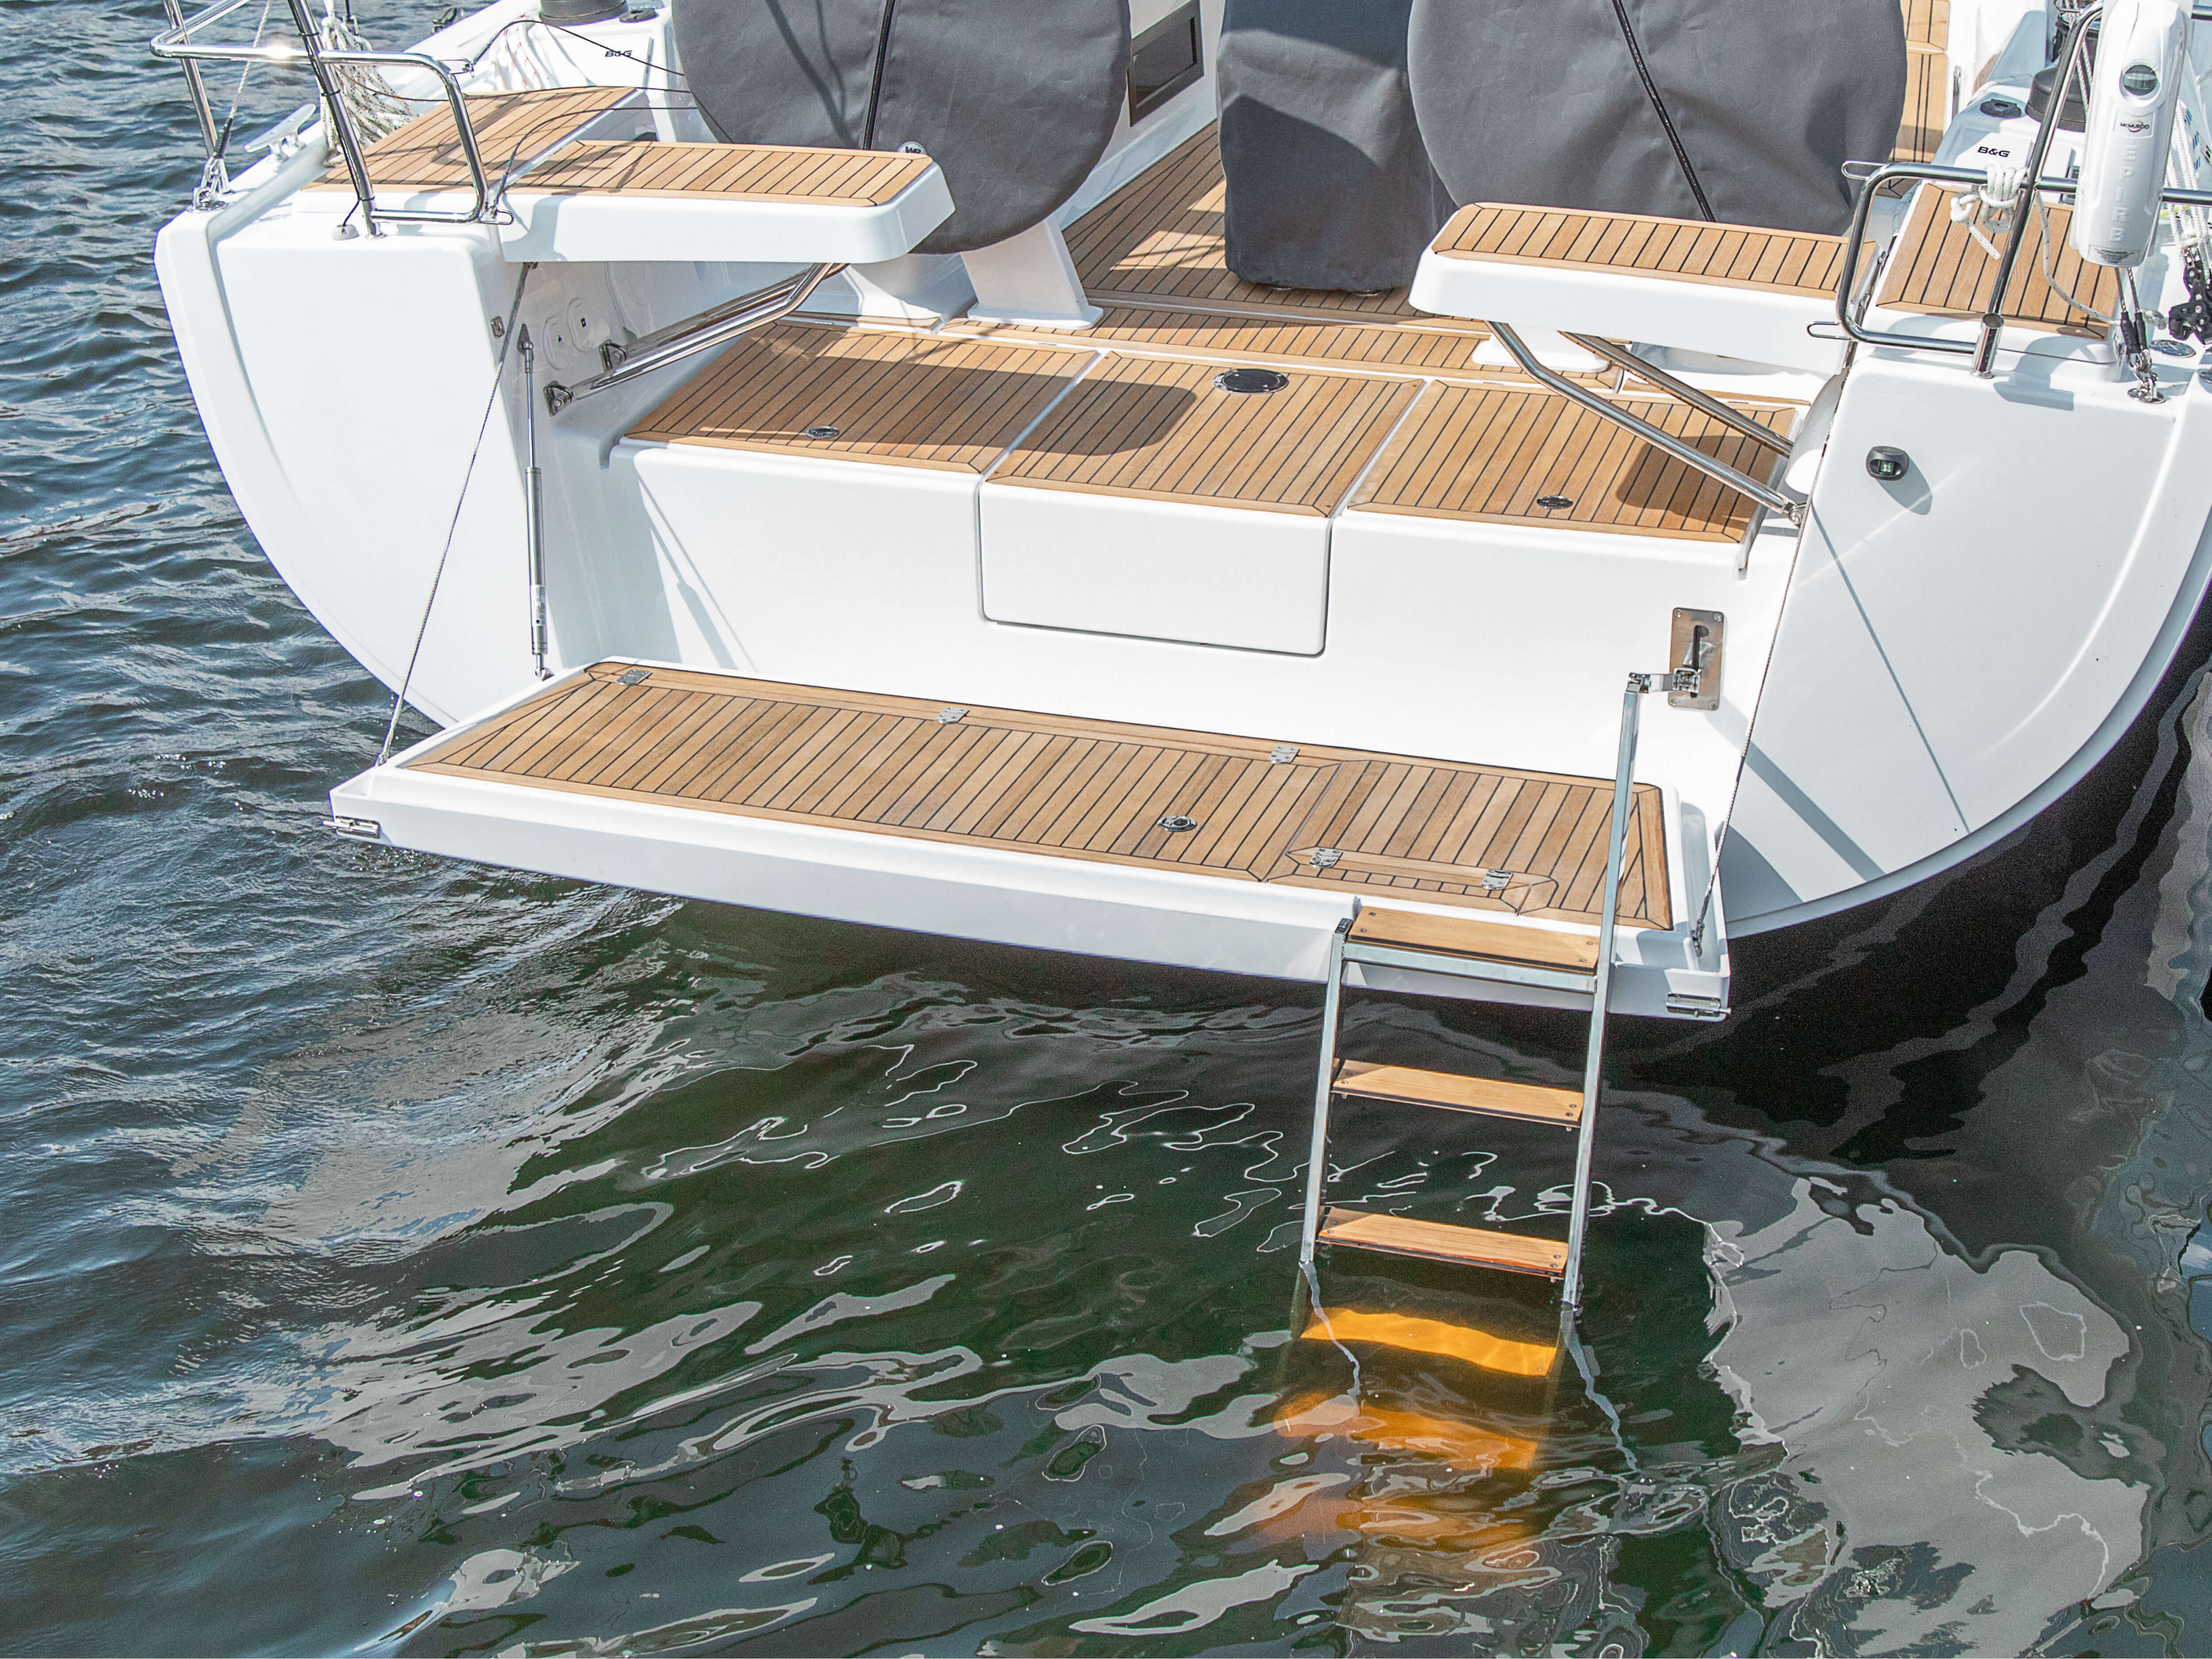 Hanse 418 | HANSE yachts amaze with their modern, functional design. Unique, puristic elegance meets exceptional performance from the pen of judel/vrolijk & co, the world's best and most experienced yacht designers. | Hanse